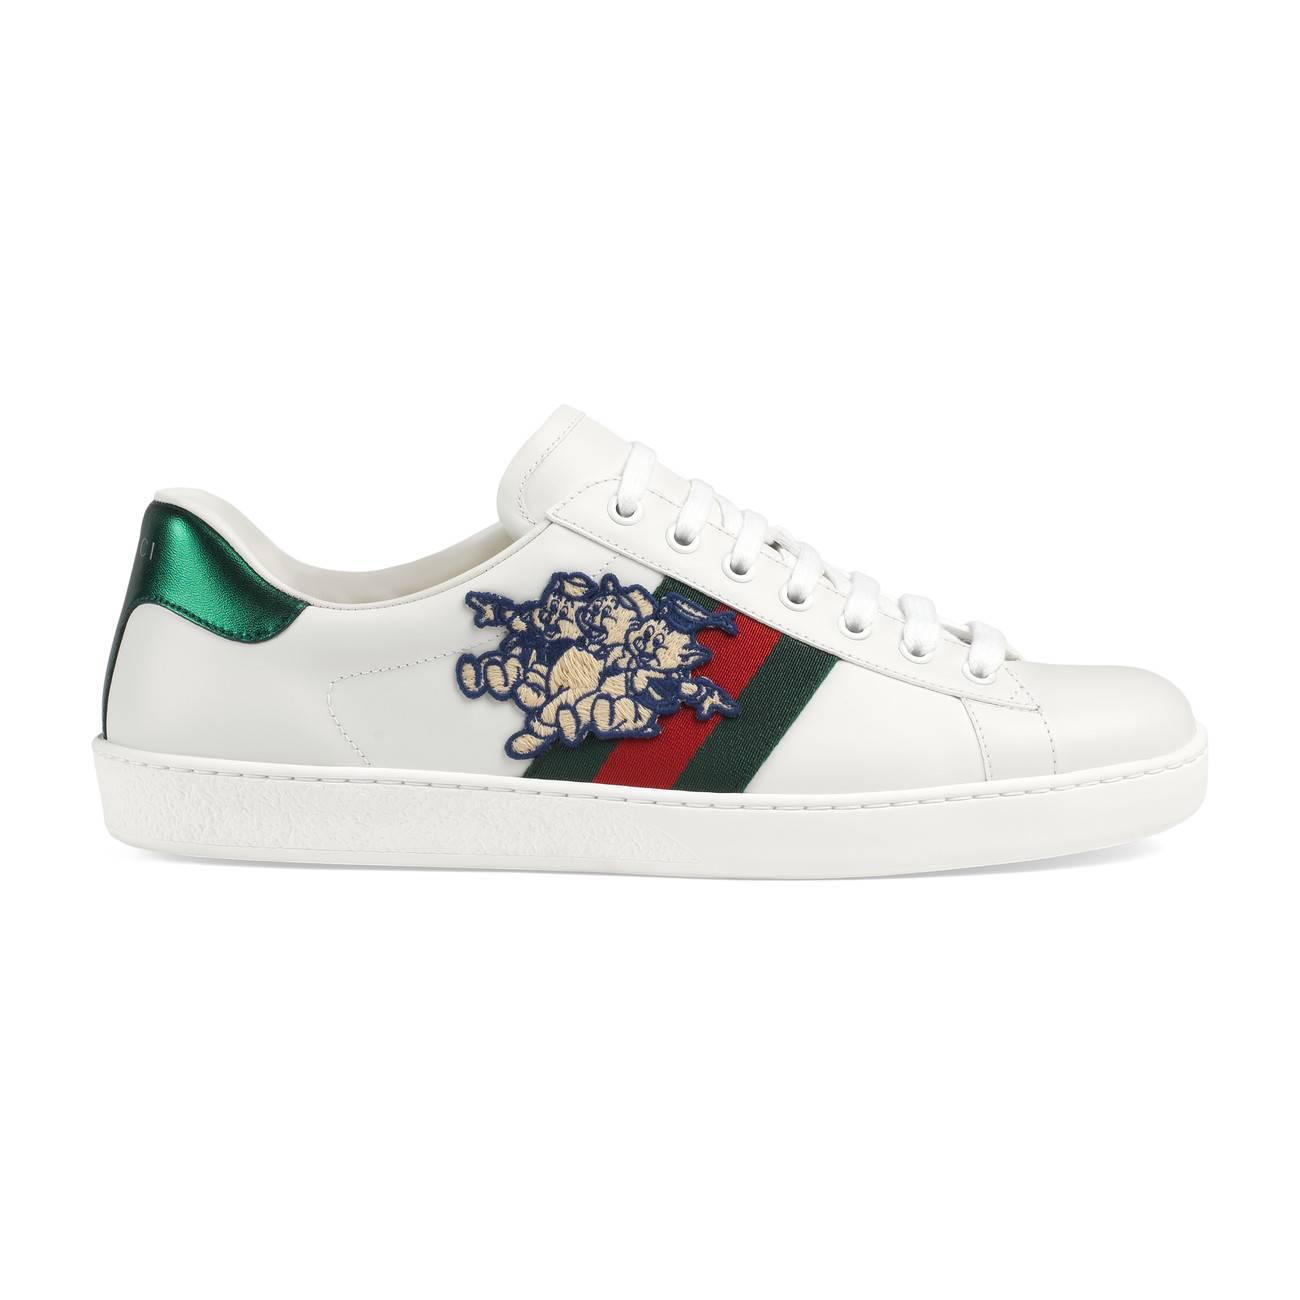 d4d32c28f4b Lyst - Gucci Men s Ace Sneaker With Three Little Pigs in White for Men